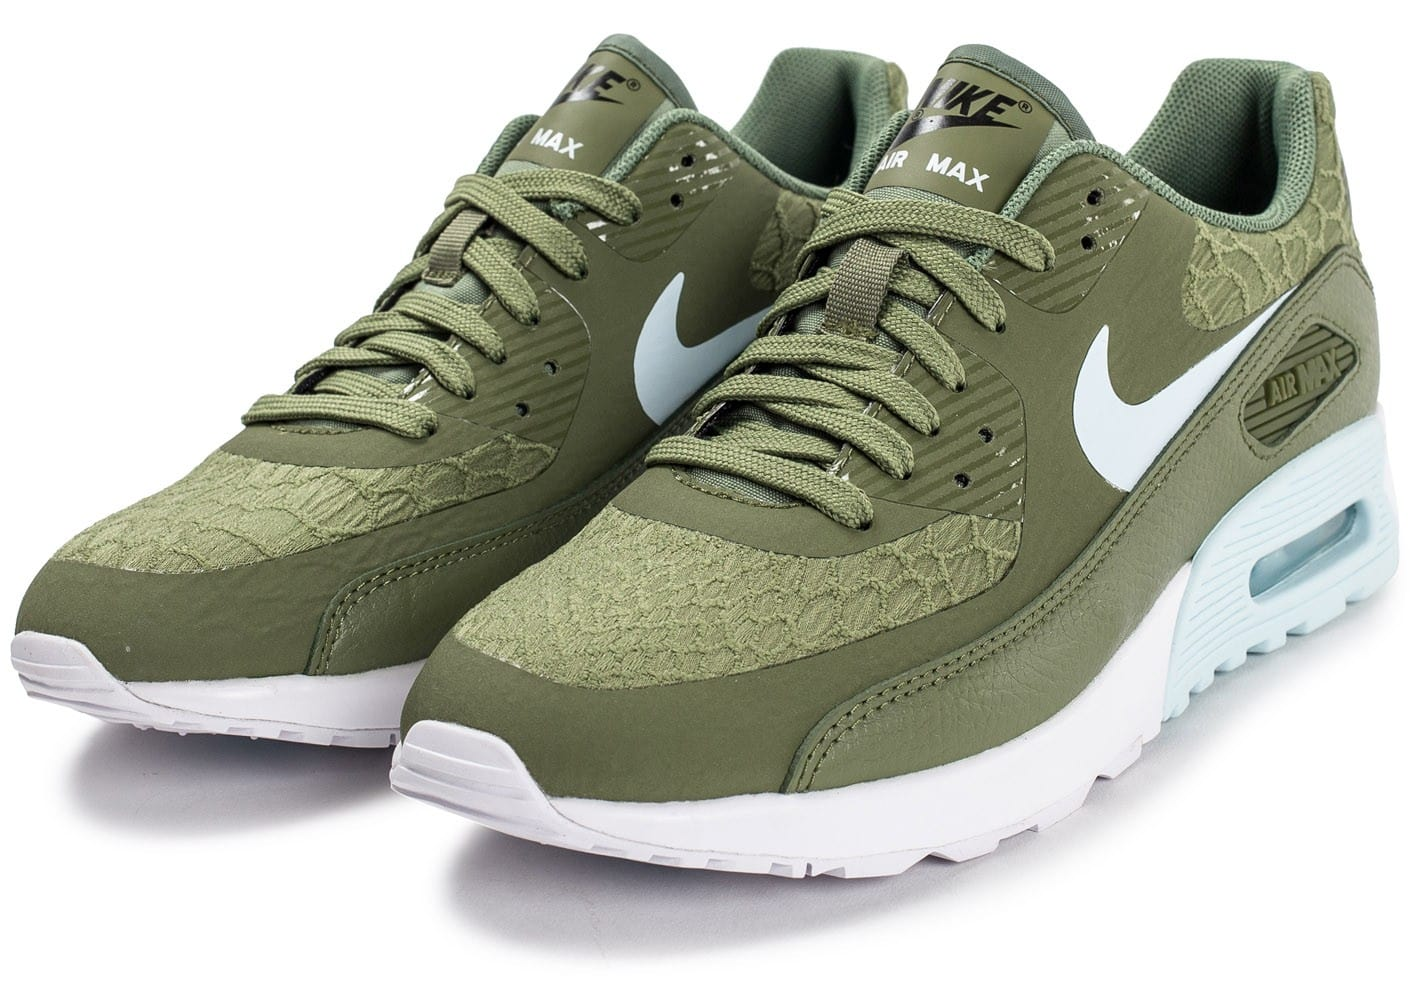 90 Nike Verte 2 0 Max Femme Air Chaussures Ultra Baskets Chausport q1FFZE6